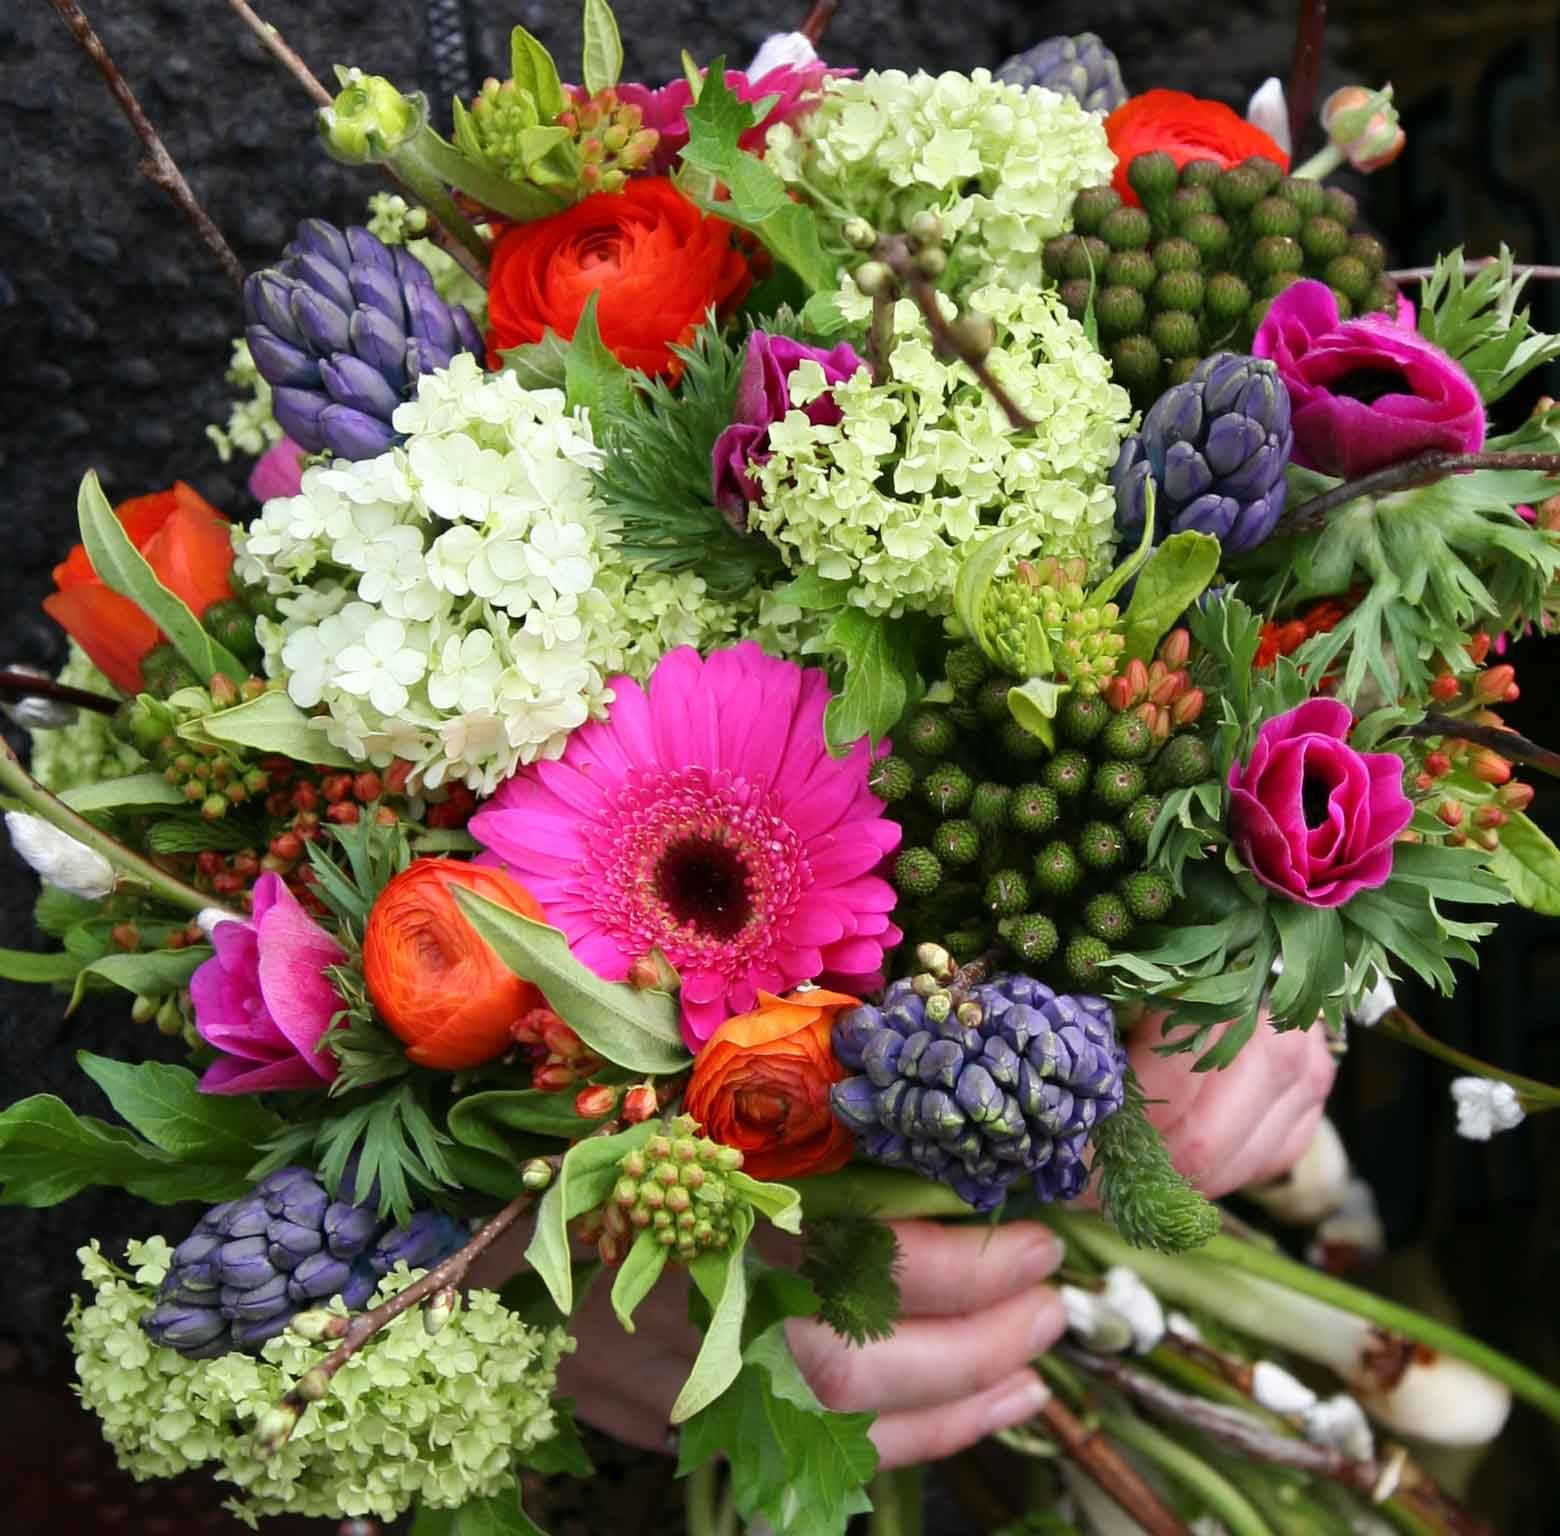 FLOWER SHOP STORIES: 365 DAYS OF FLOWERS